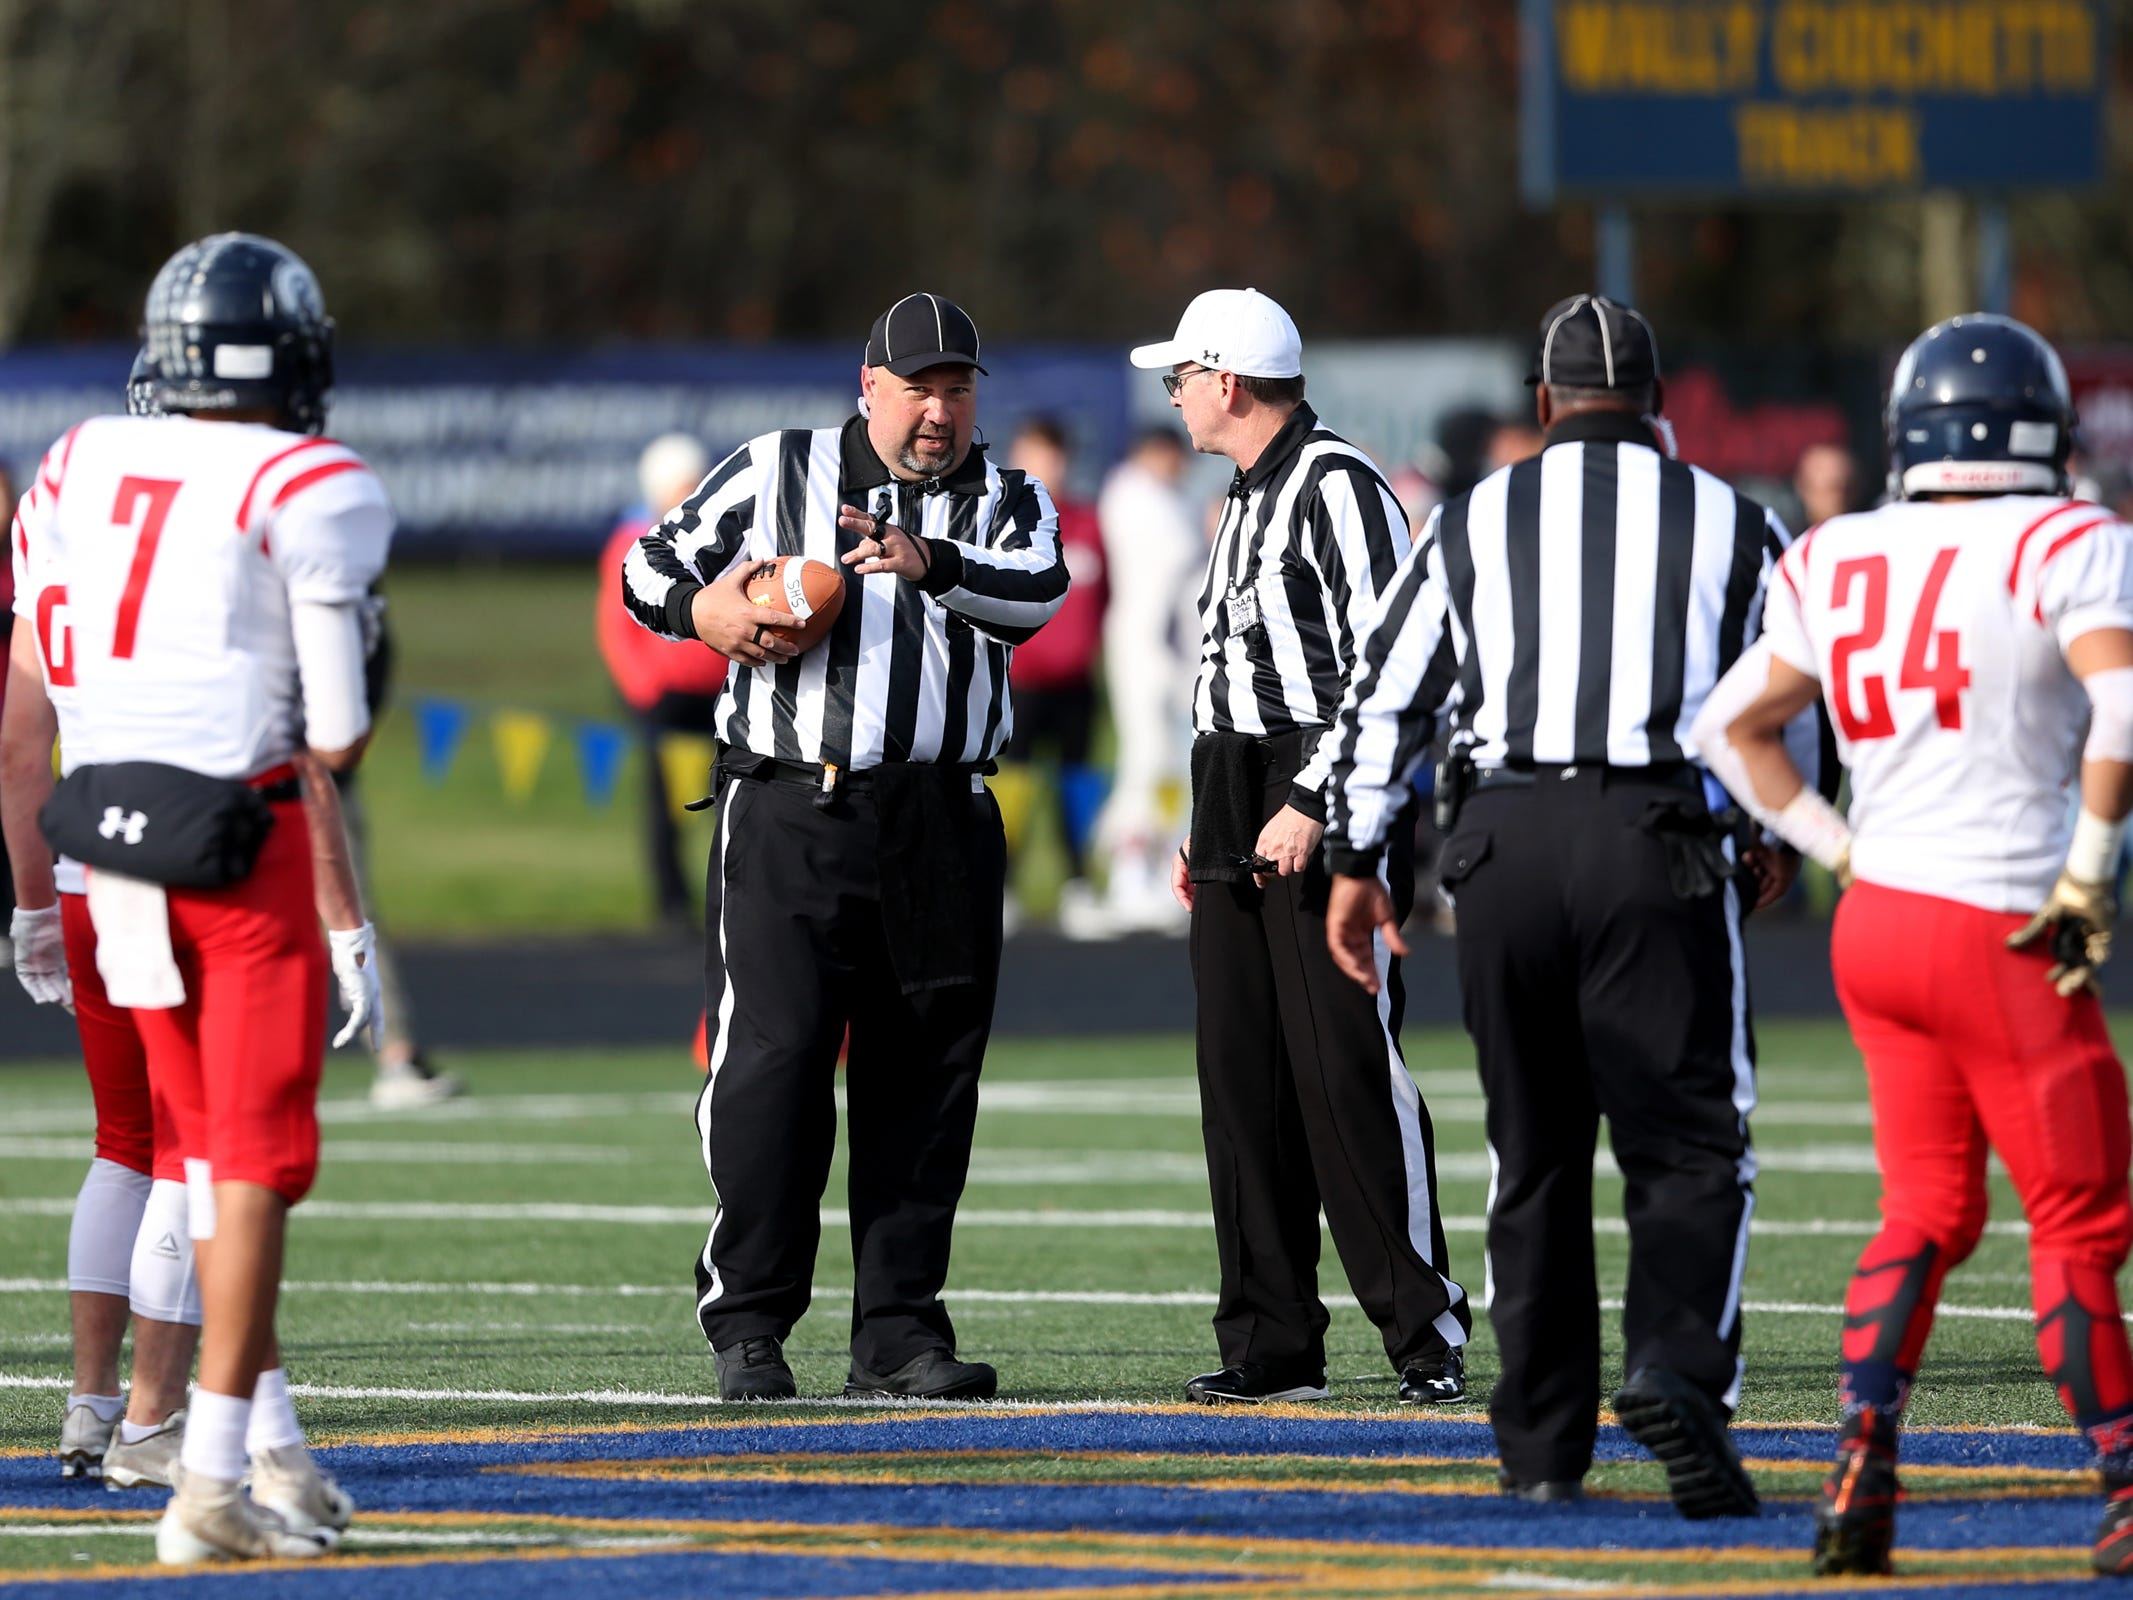 Referees discuss a play in the Kennedy vs. Santiam OSAA Class 2A state championship football game at Cottage Grove High School in Cottage Grove on Saturday, Nov. 24, 2018.